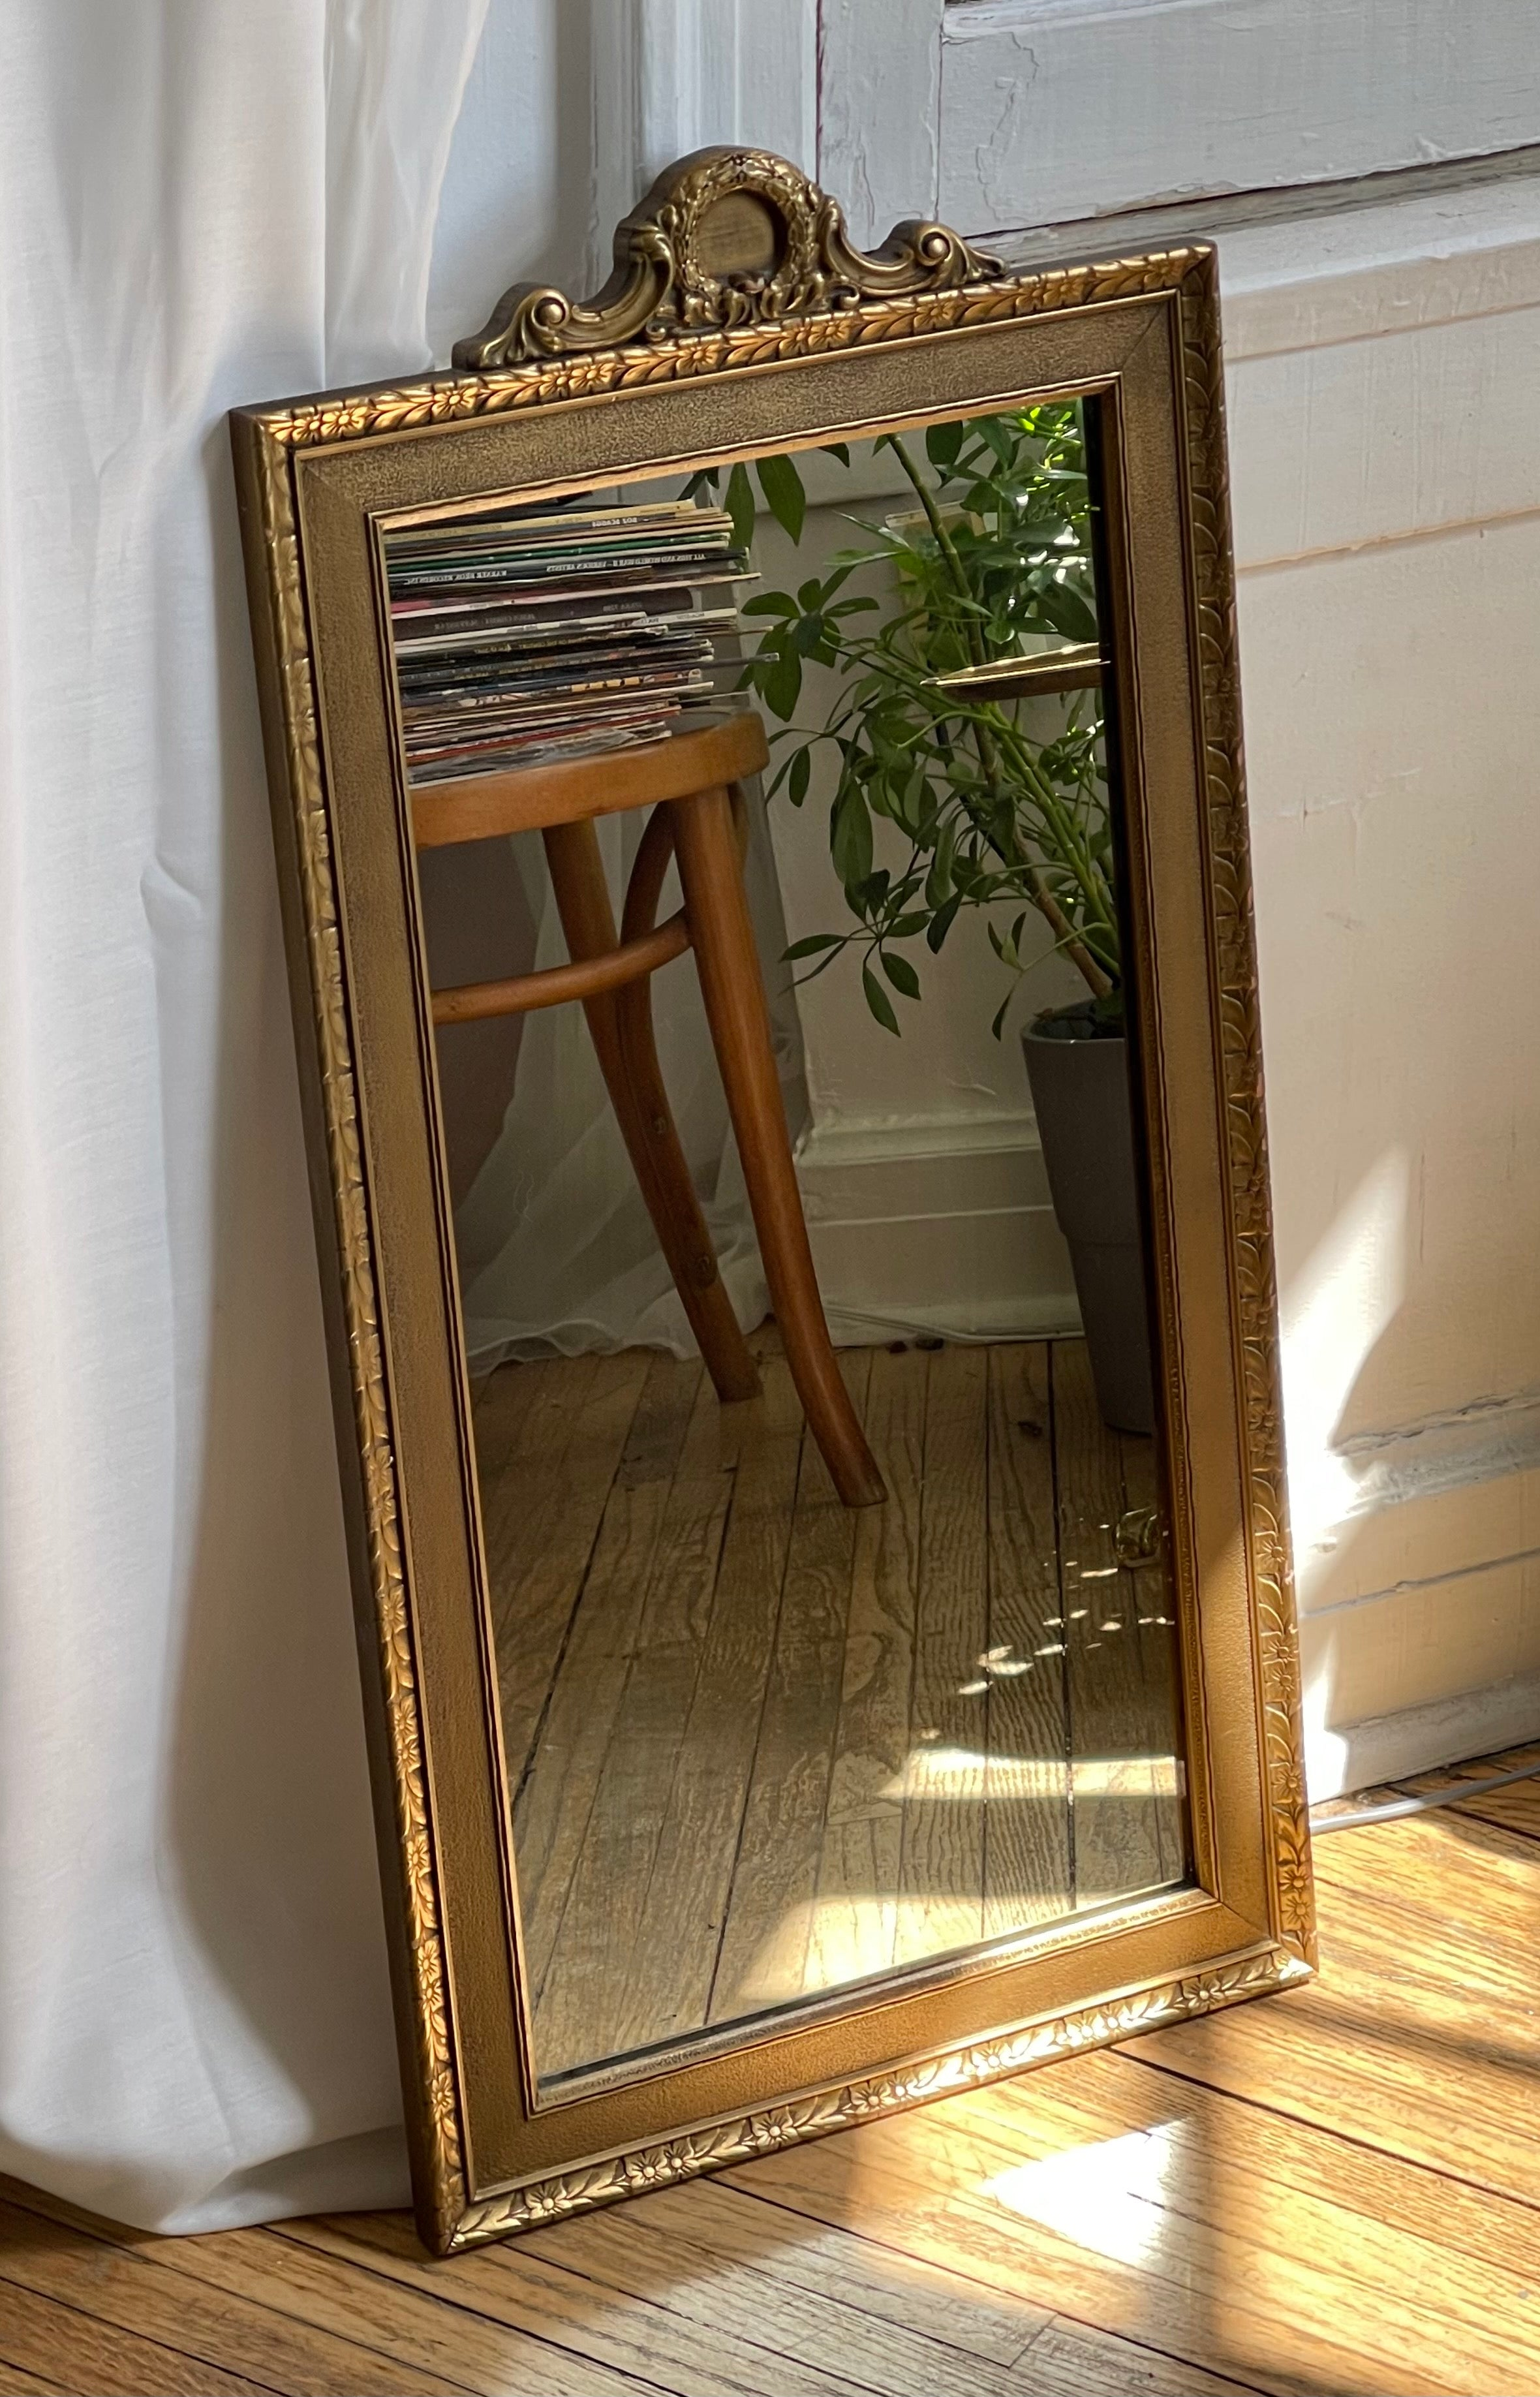 vintage, ornate gold-framed mirror